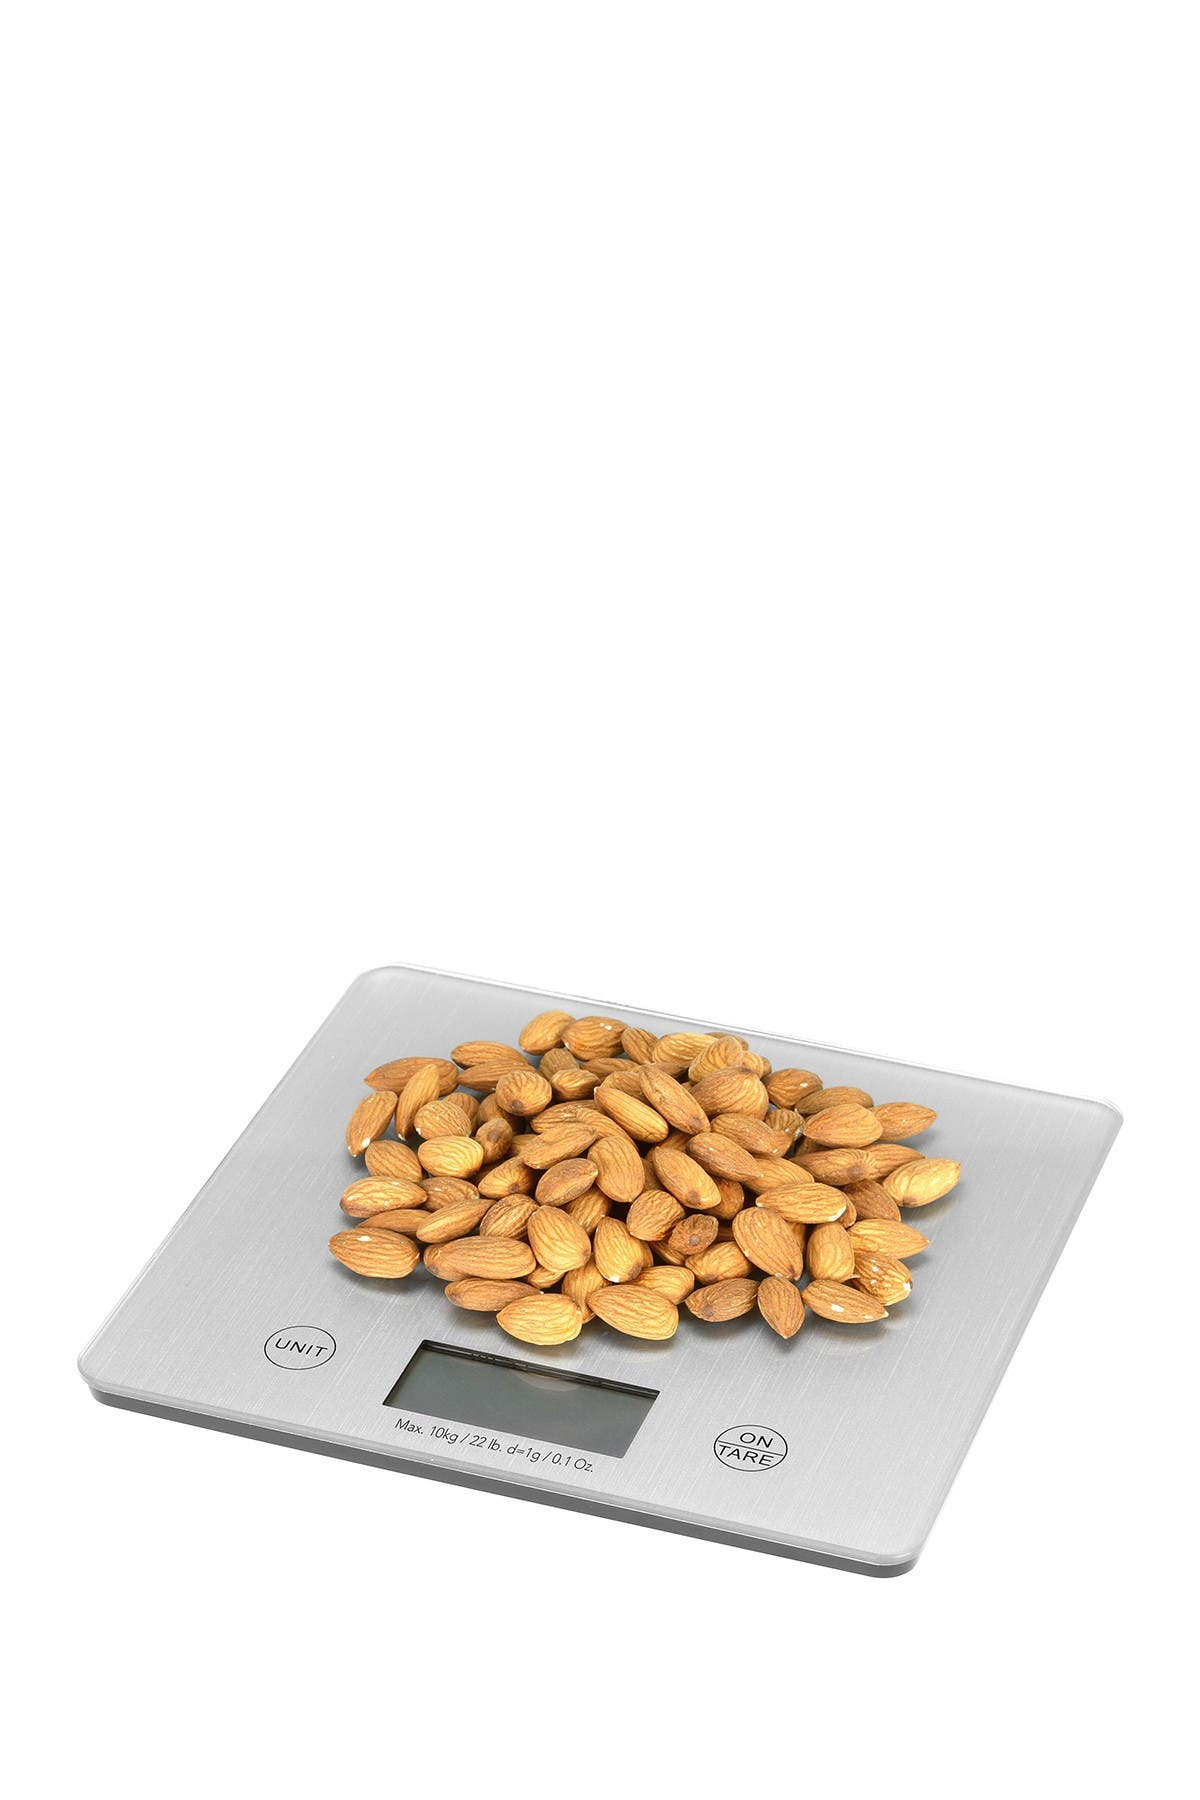 Image of Kalorik XL Silver Digital Kitchen Scale